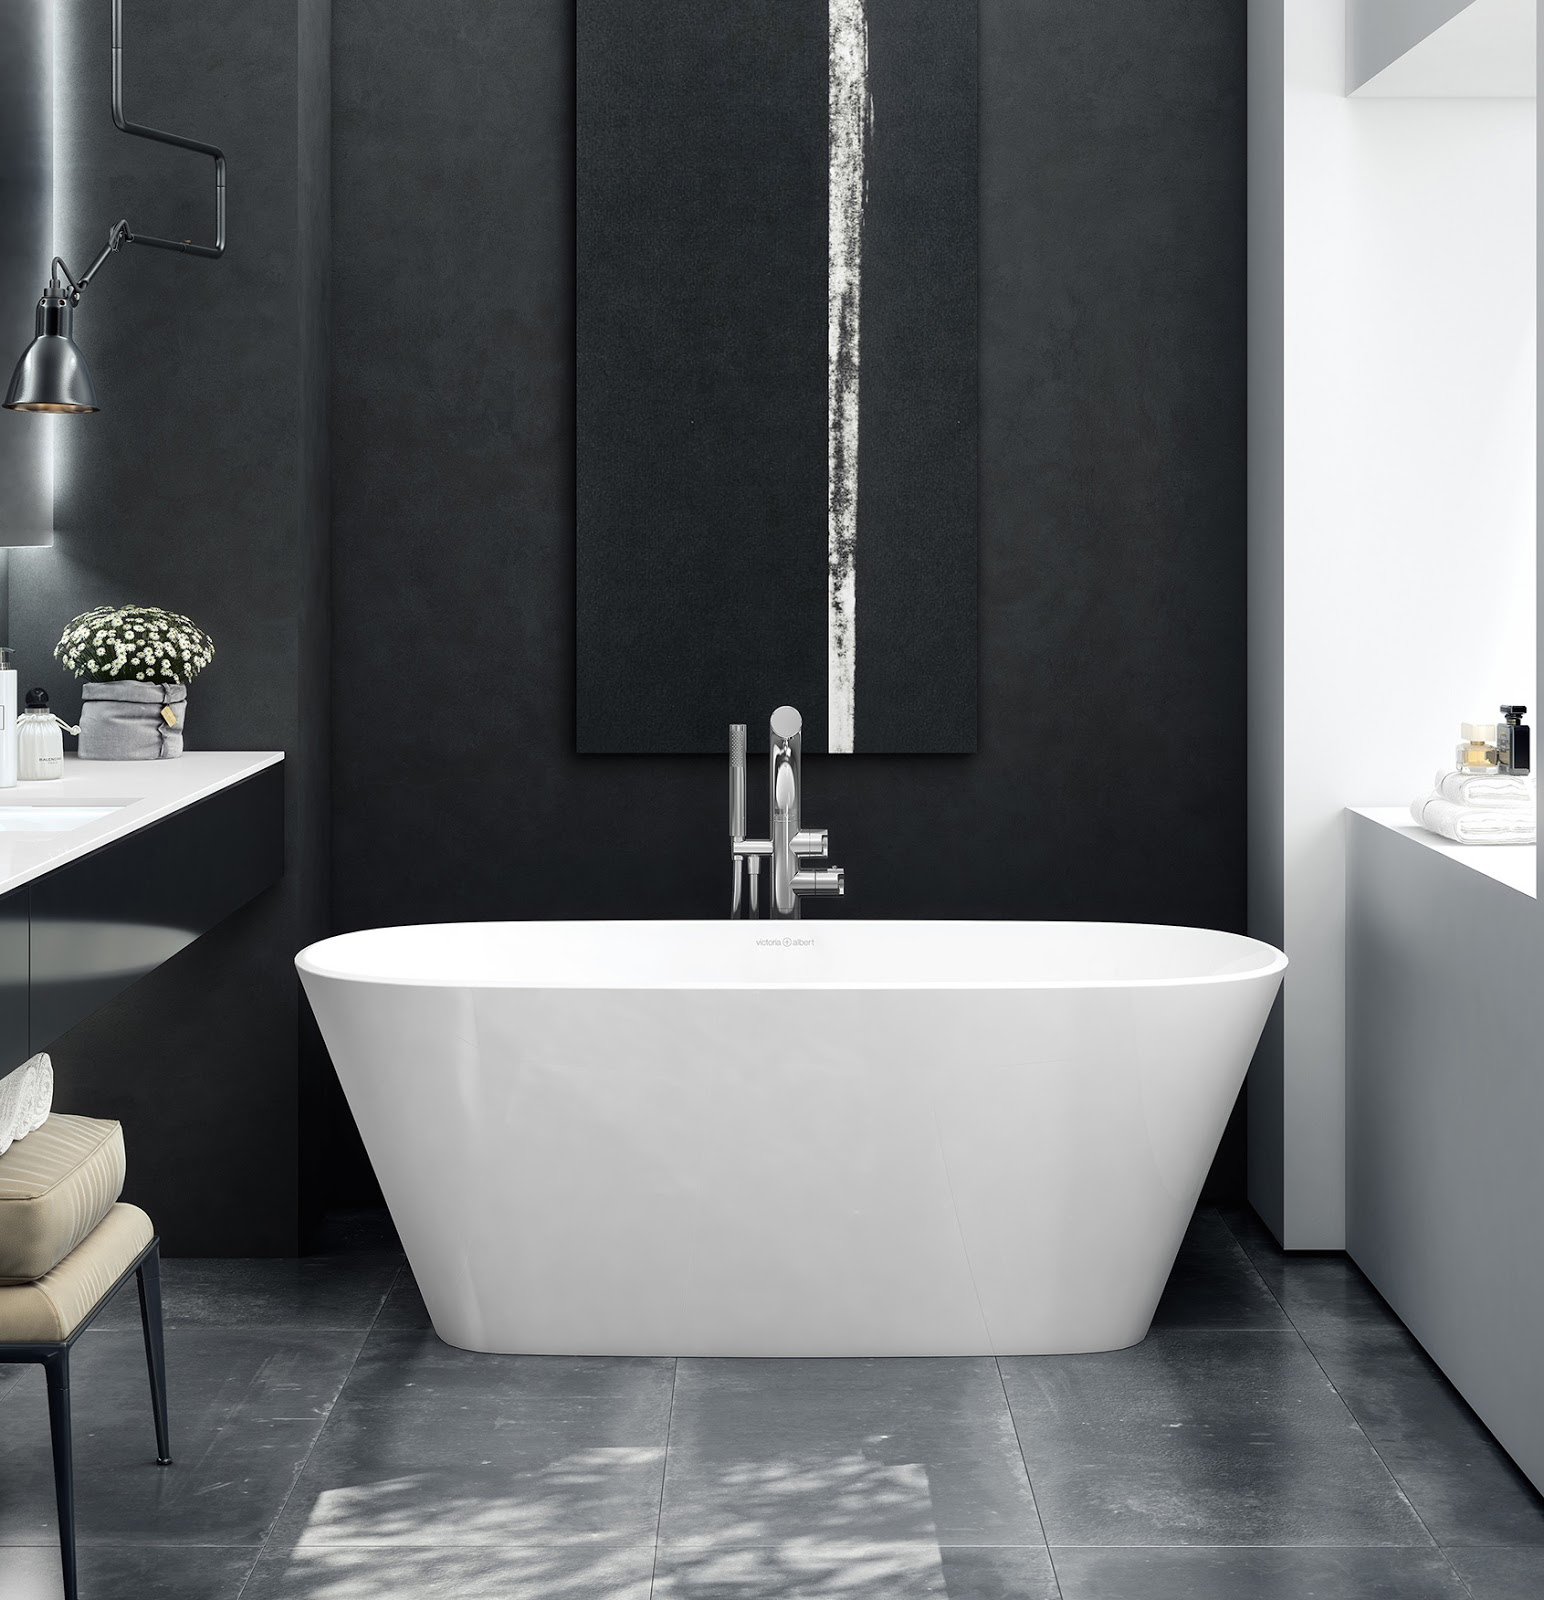 Top 5 Freestanding Tubs | Harlow & Thistle - Home Design - Lifestyle ...